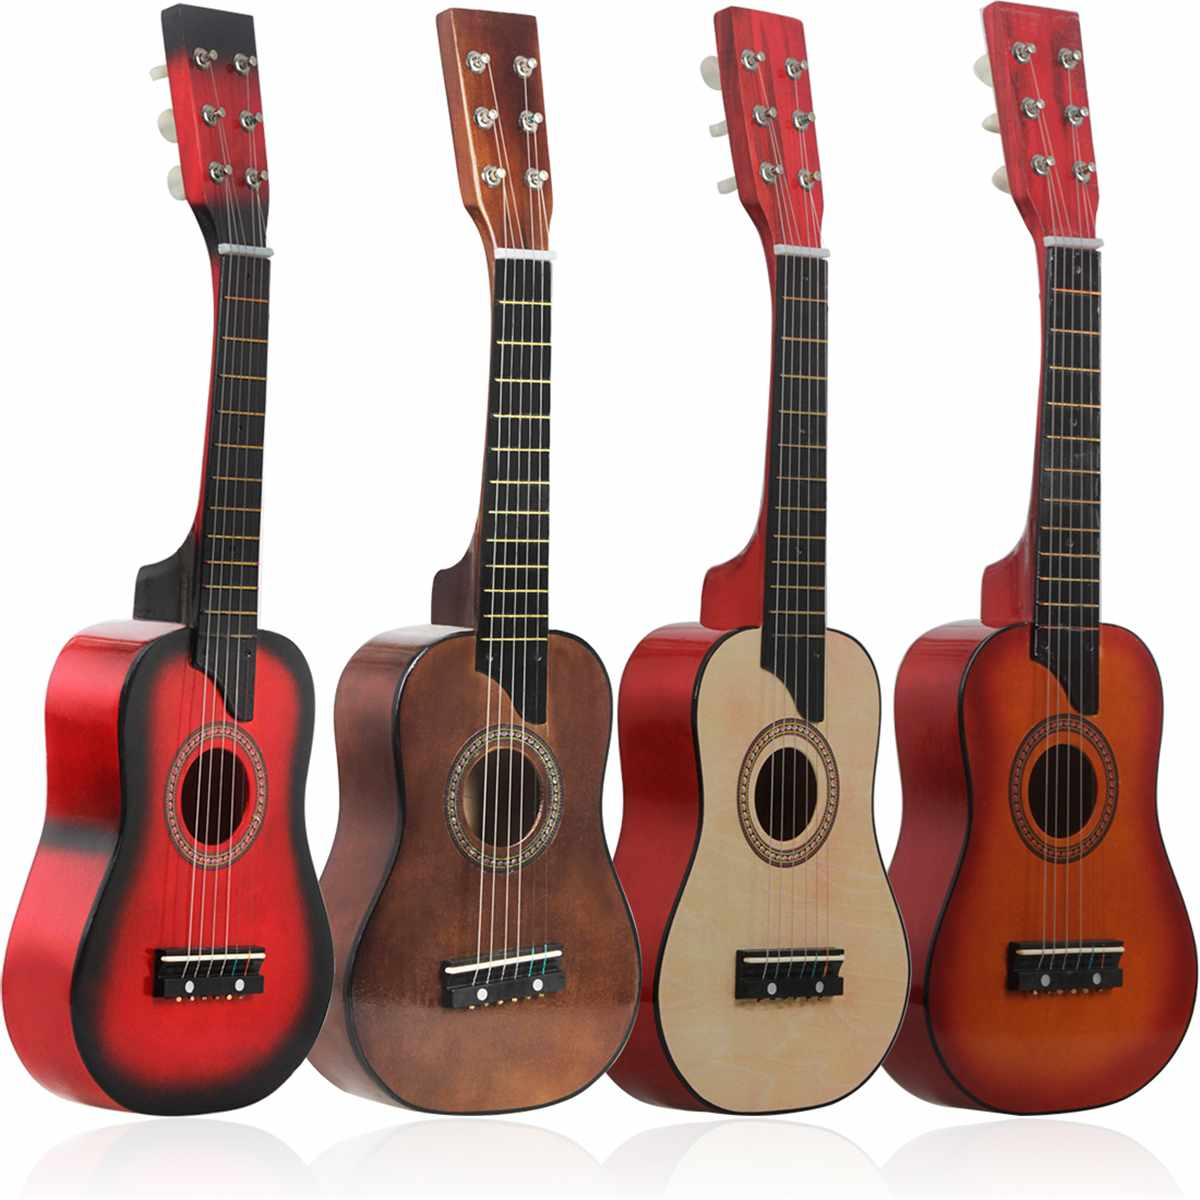 25 inch Mini Wooden Guitar Acoustic 6 String with Carrying Bag Musical Instrument Toy Children Educational Musical Gift(China)